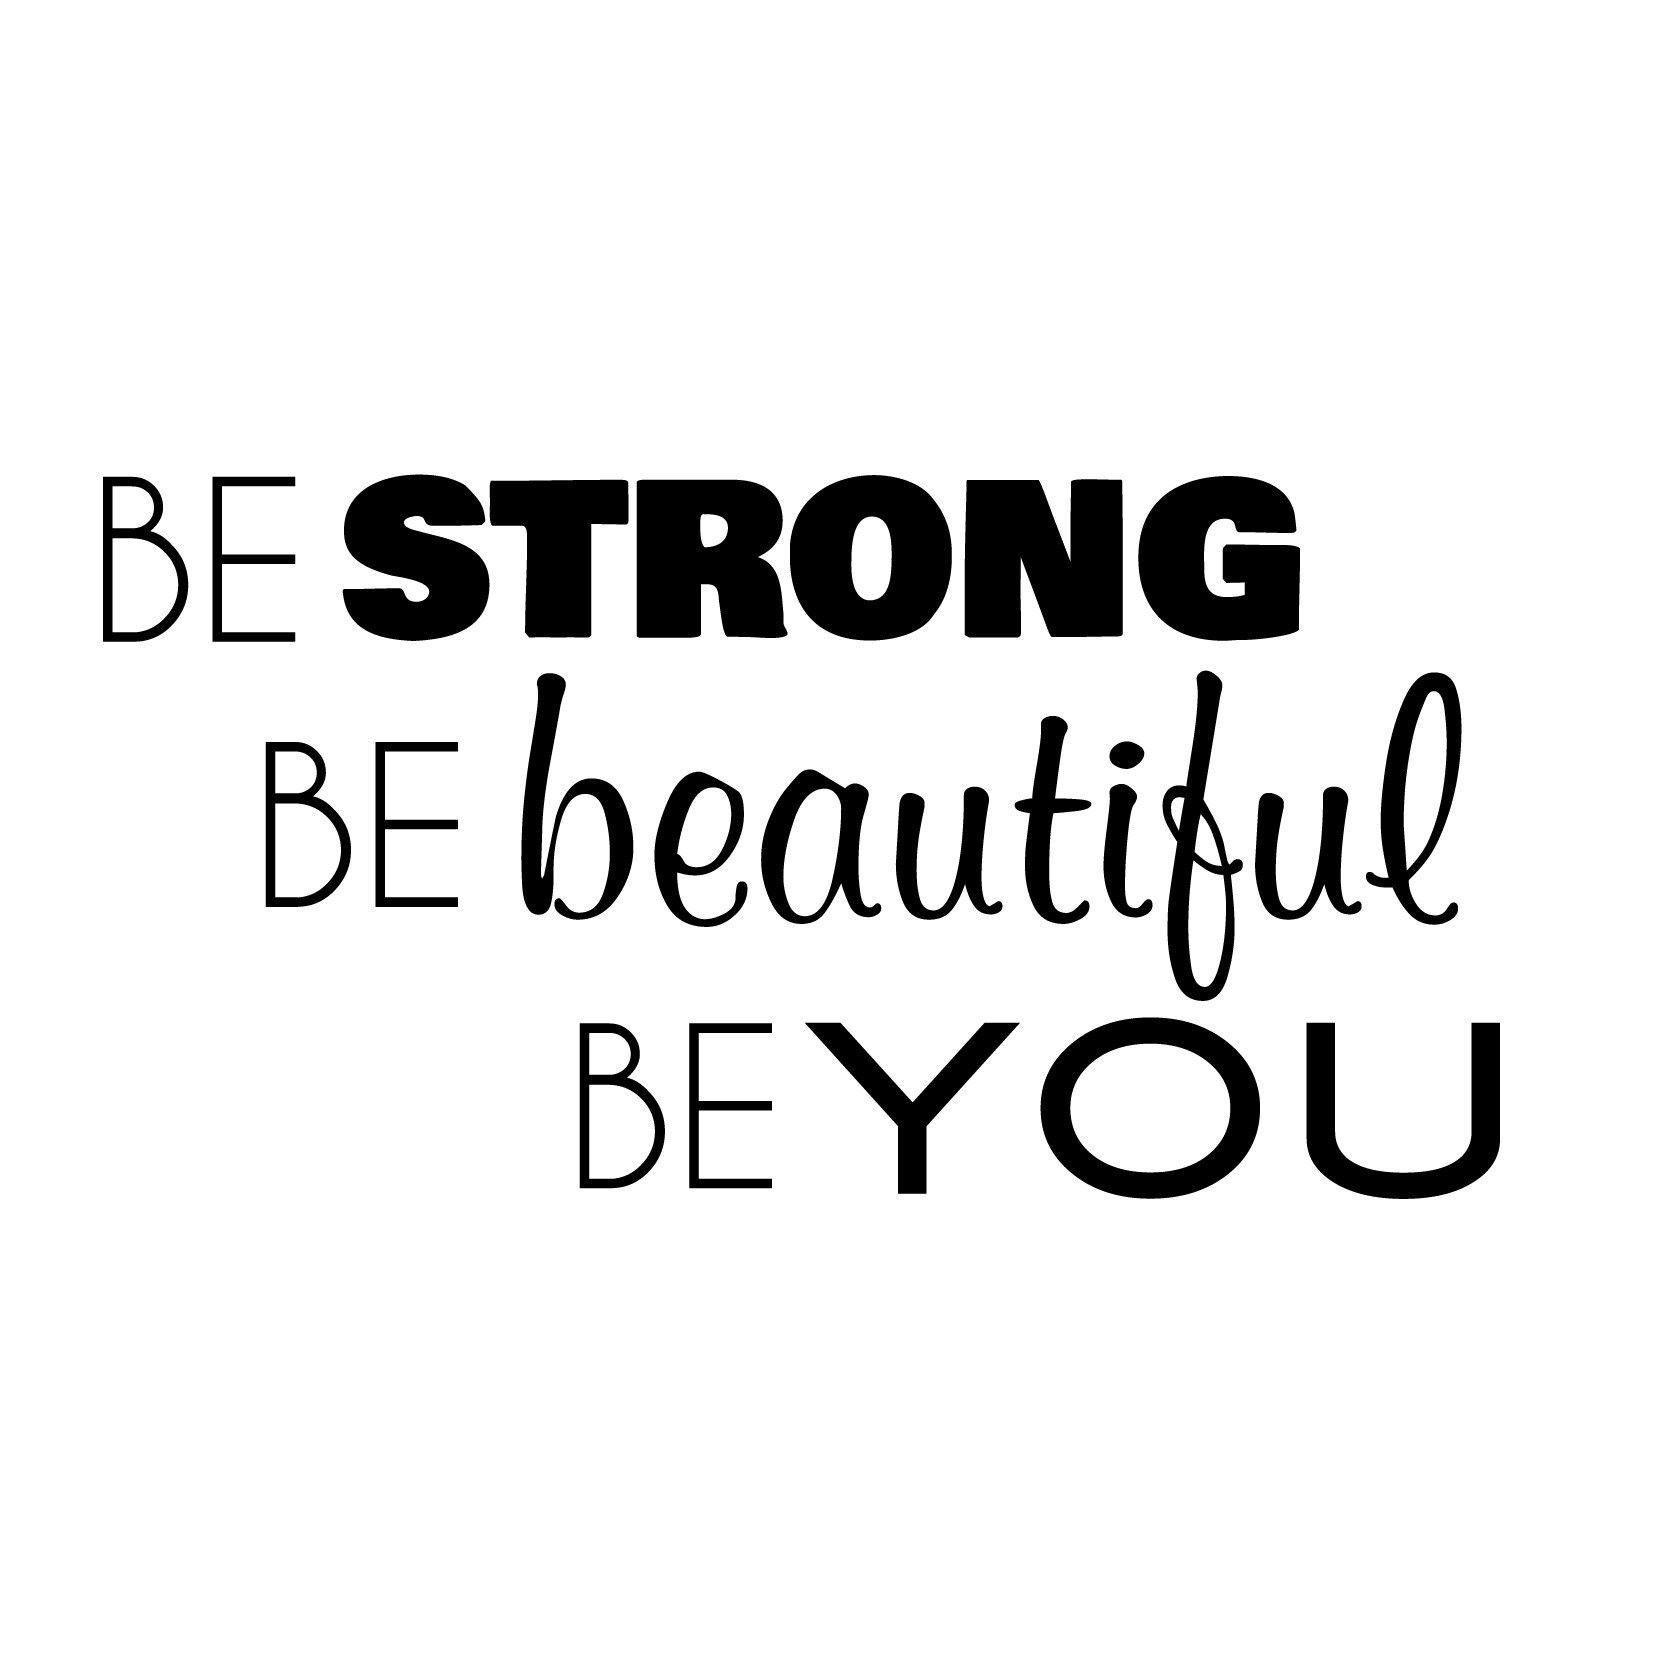 Be Strong Be Beautiful Be You Quote  Be yourself quotes, Strong